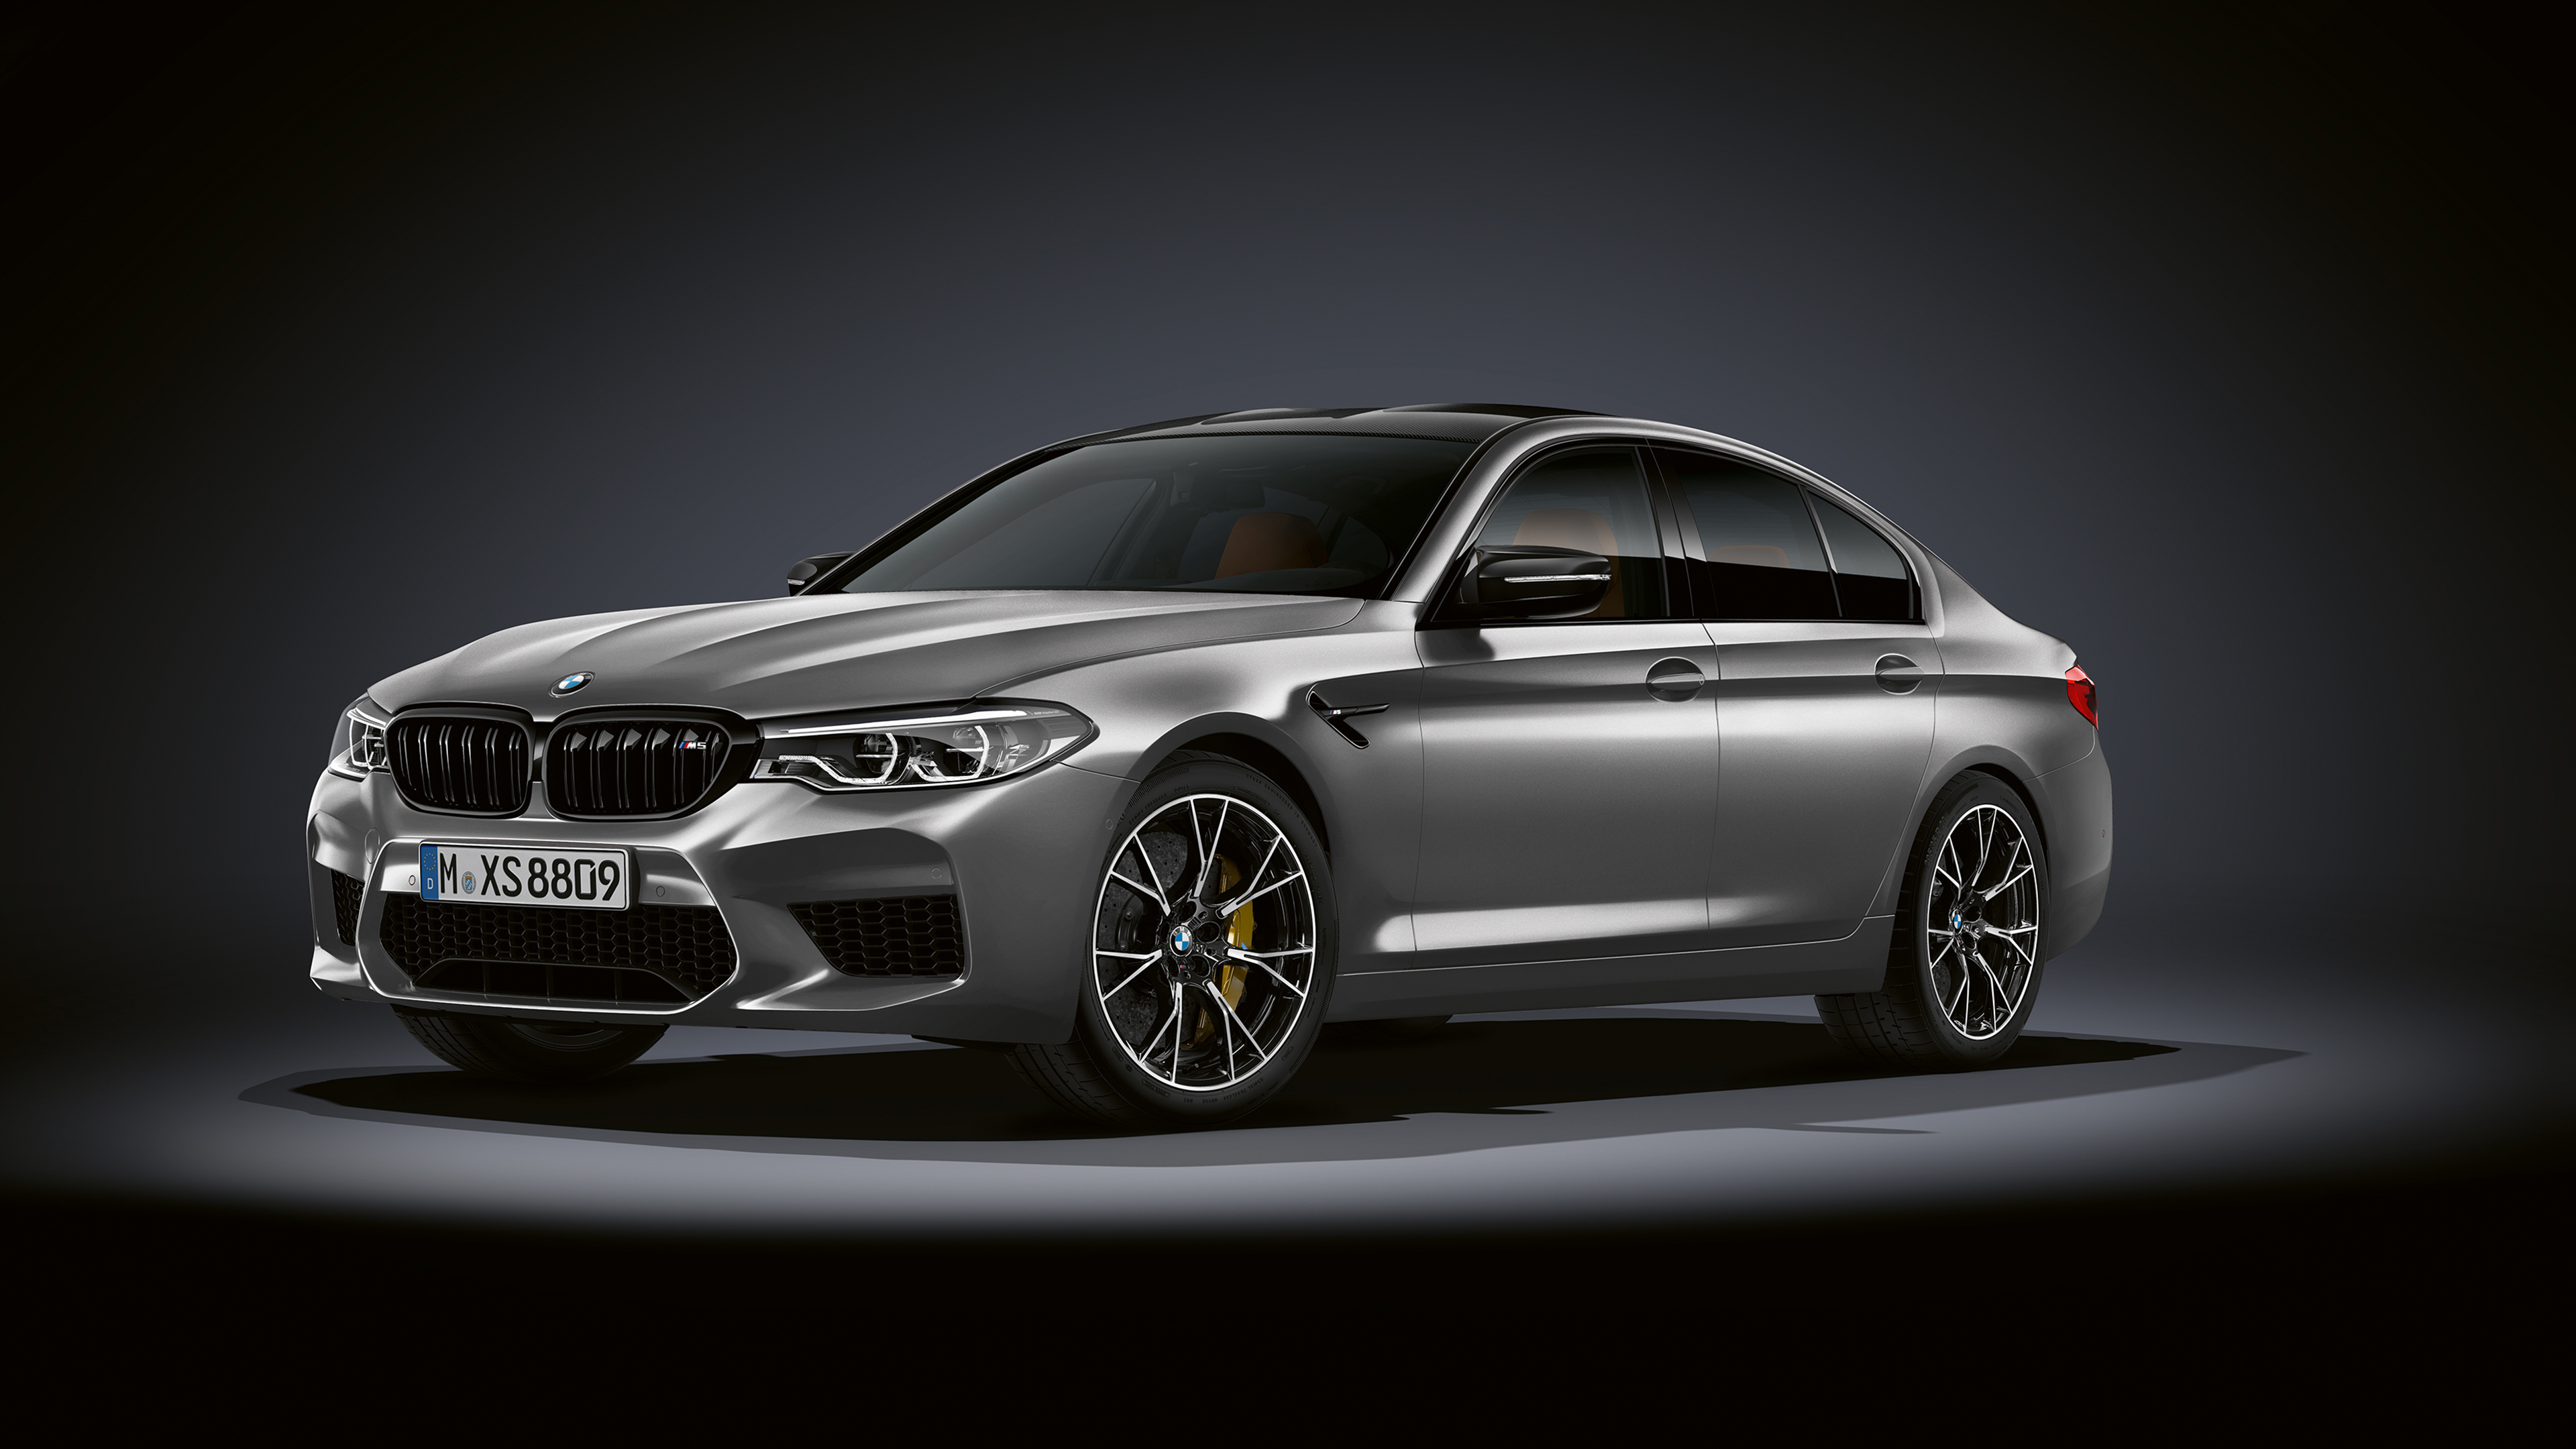 2018 Bmw M5 Competition 4k 2 Wallpaper Hd Car Wallpapers Id 10366